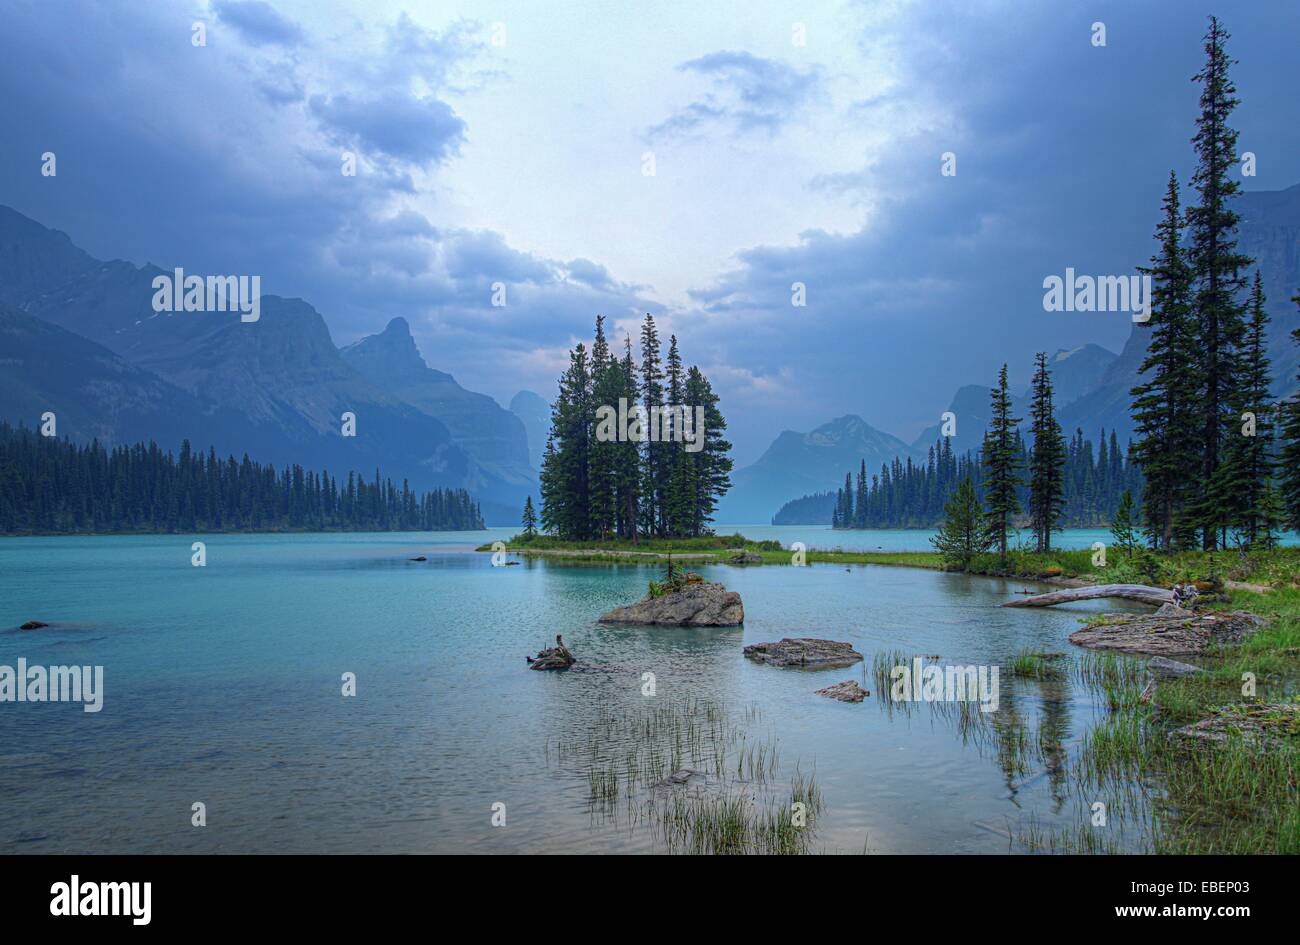 Spirit Island in Jasper National Park in the Canadian Rockies - Stock Image